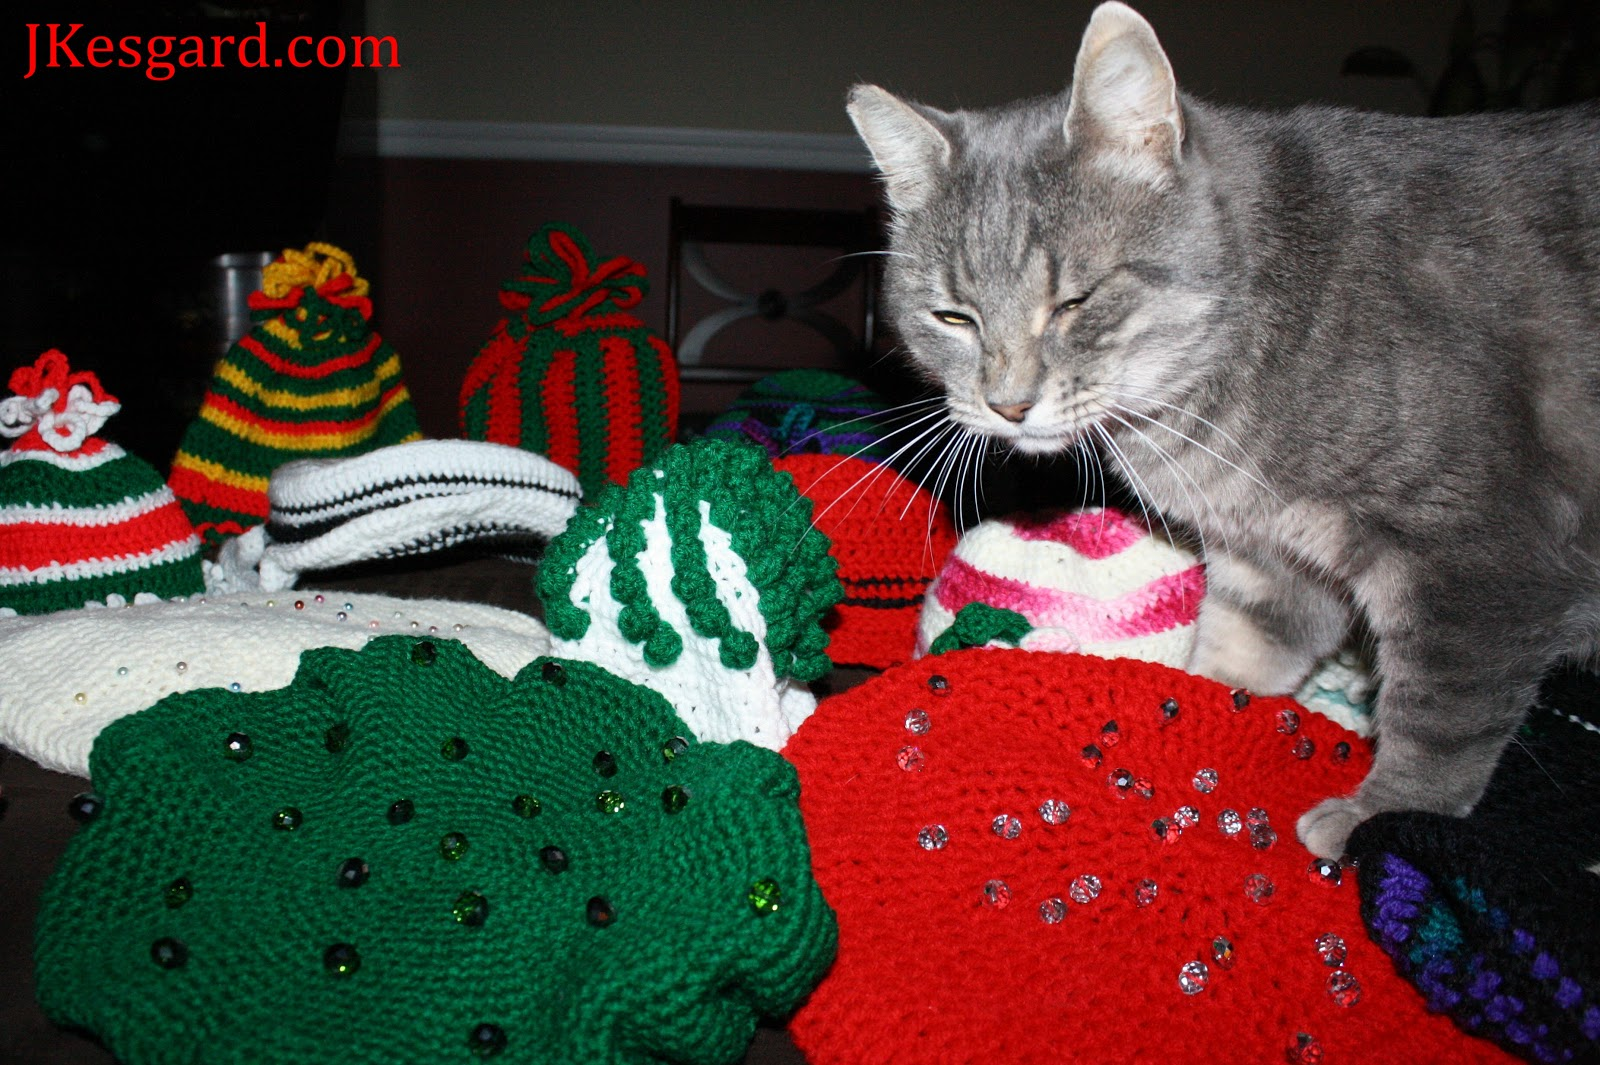 A cat wanders through a pile of crocheted hats